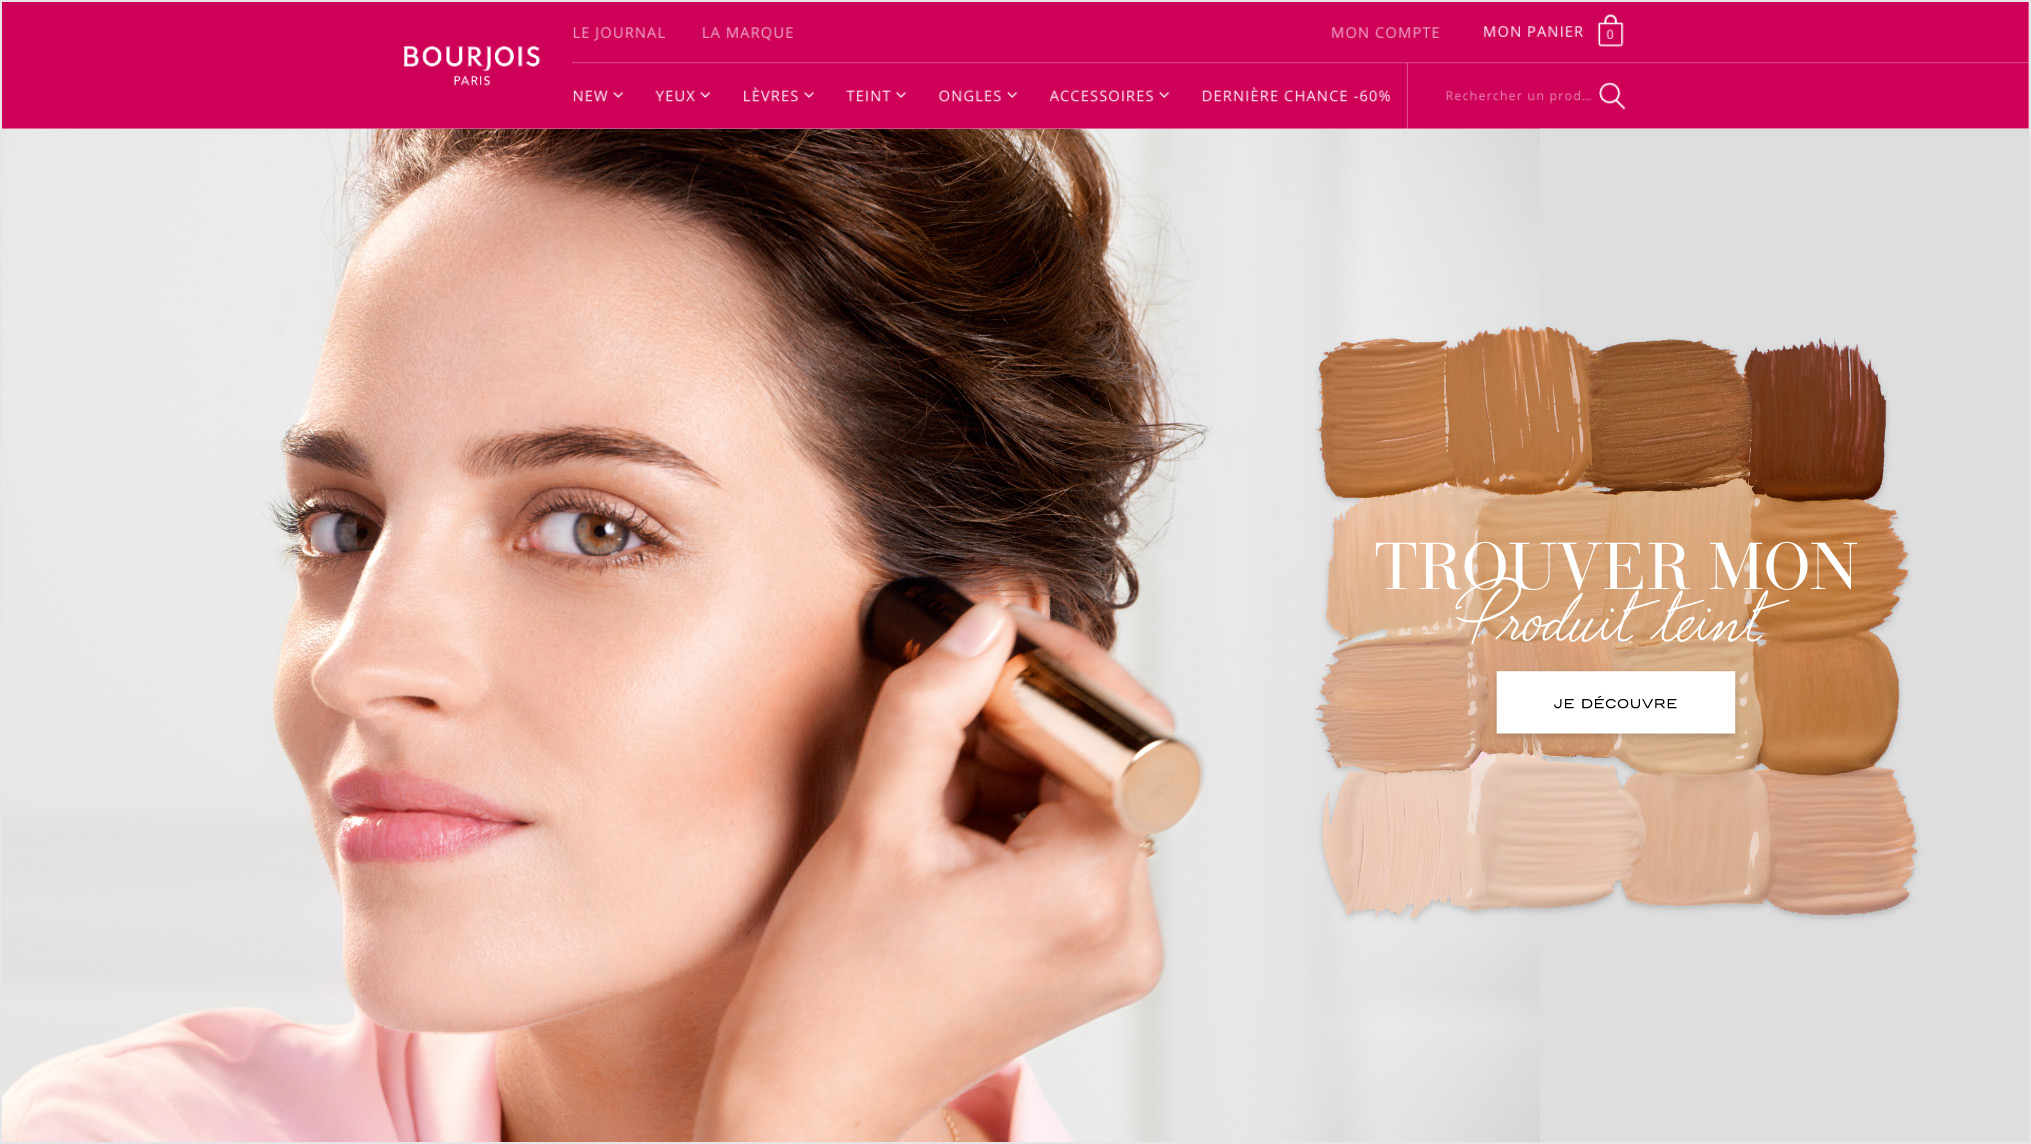 diagnostic_teint_bourjois_1